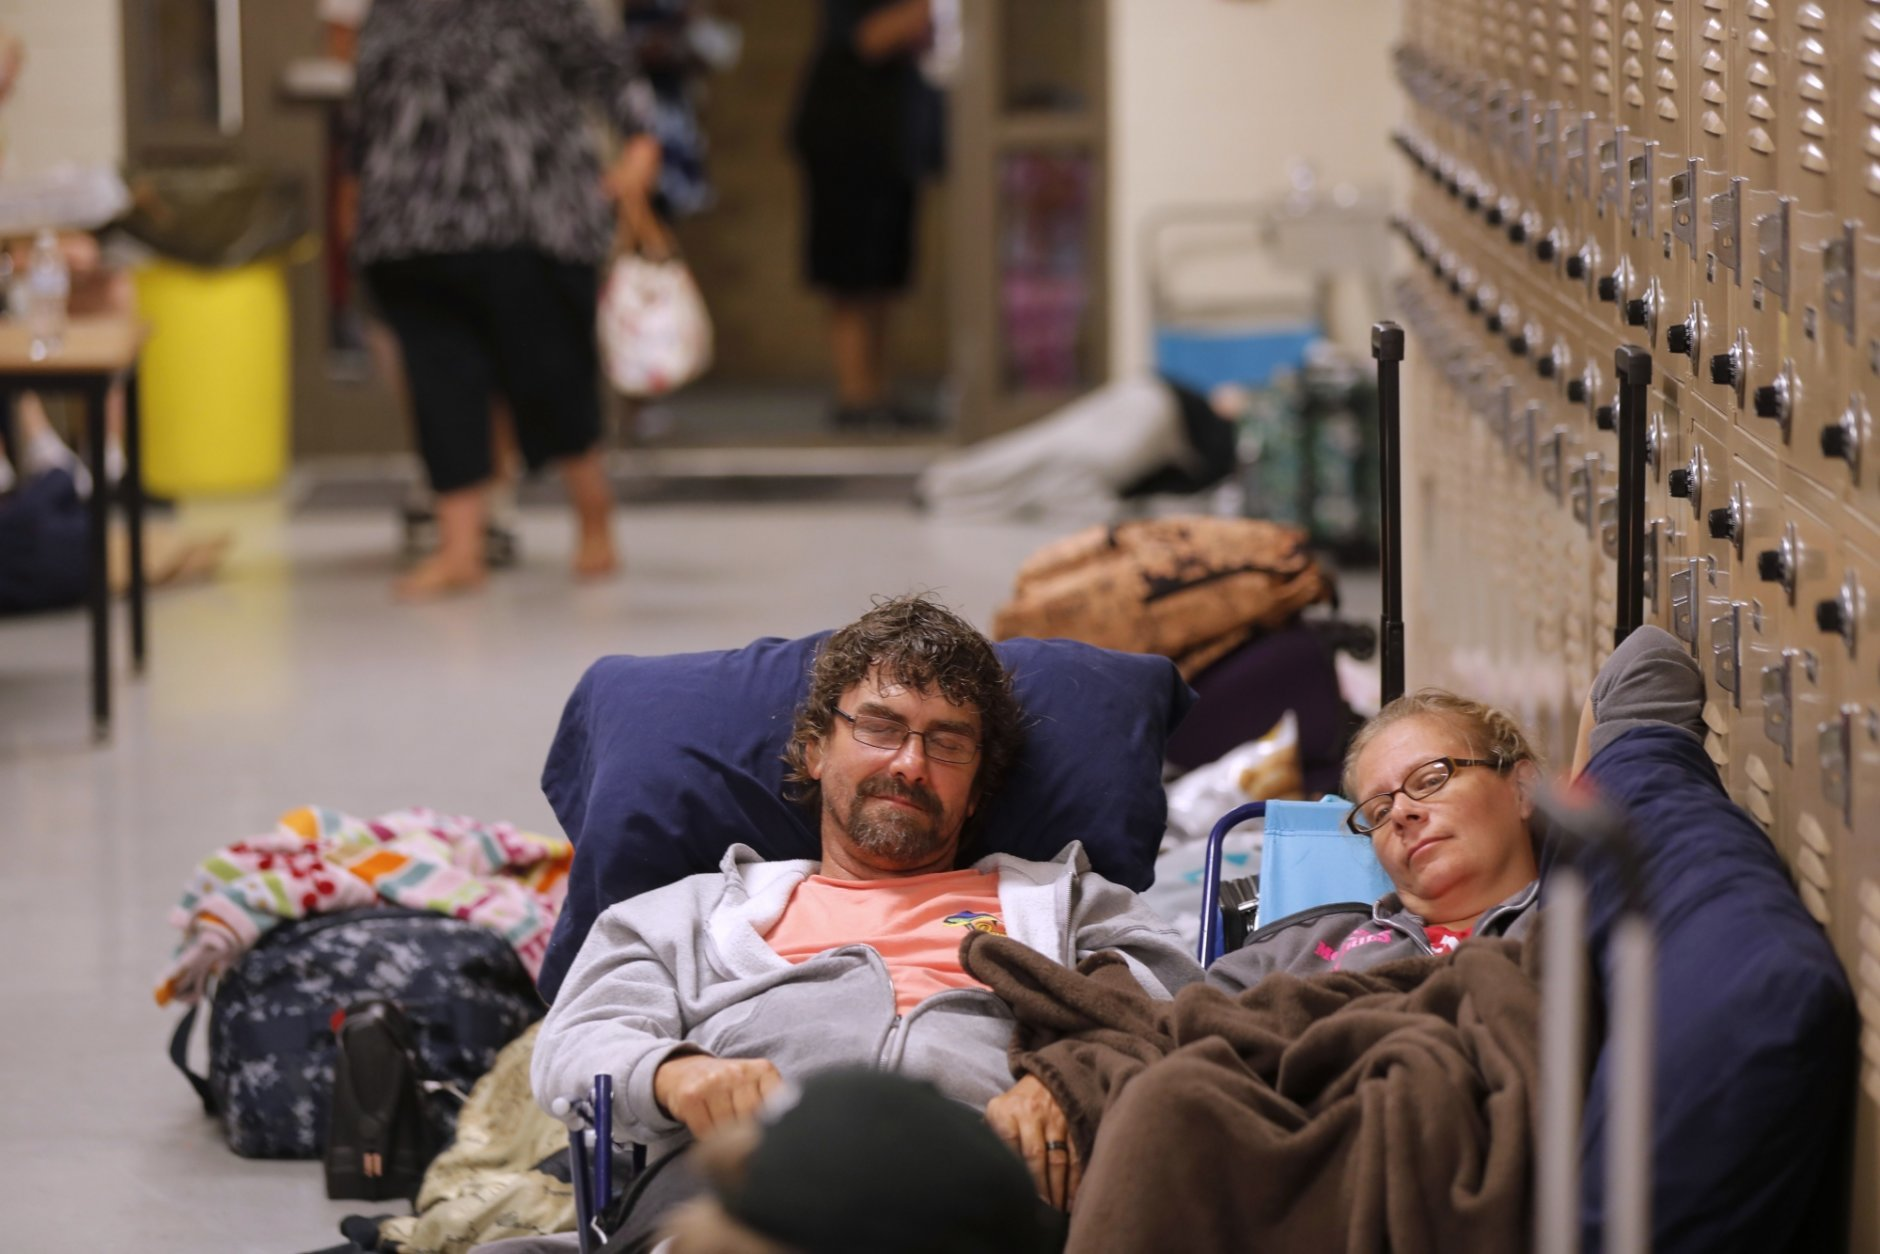 CORRECTS NAME OF HURRICANE TO MICHAEL FROM MATTHEW - Jeff Ready and his wife Julie Ready rest in a a hallway at an evacuation shelter set up at Rutherford High School, in advance of Hurricane Michael, which is expected to make landfall today, in Panama City Beach, Fla., Wednesday, Oct. 10, 2018. (AP Photo/Gerald Herbert)